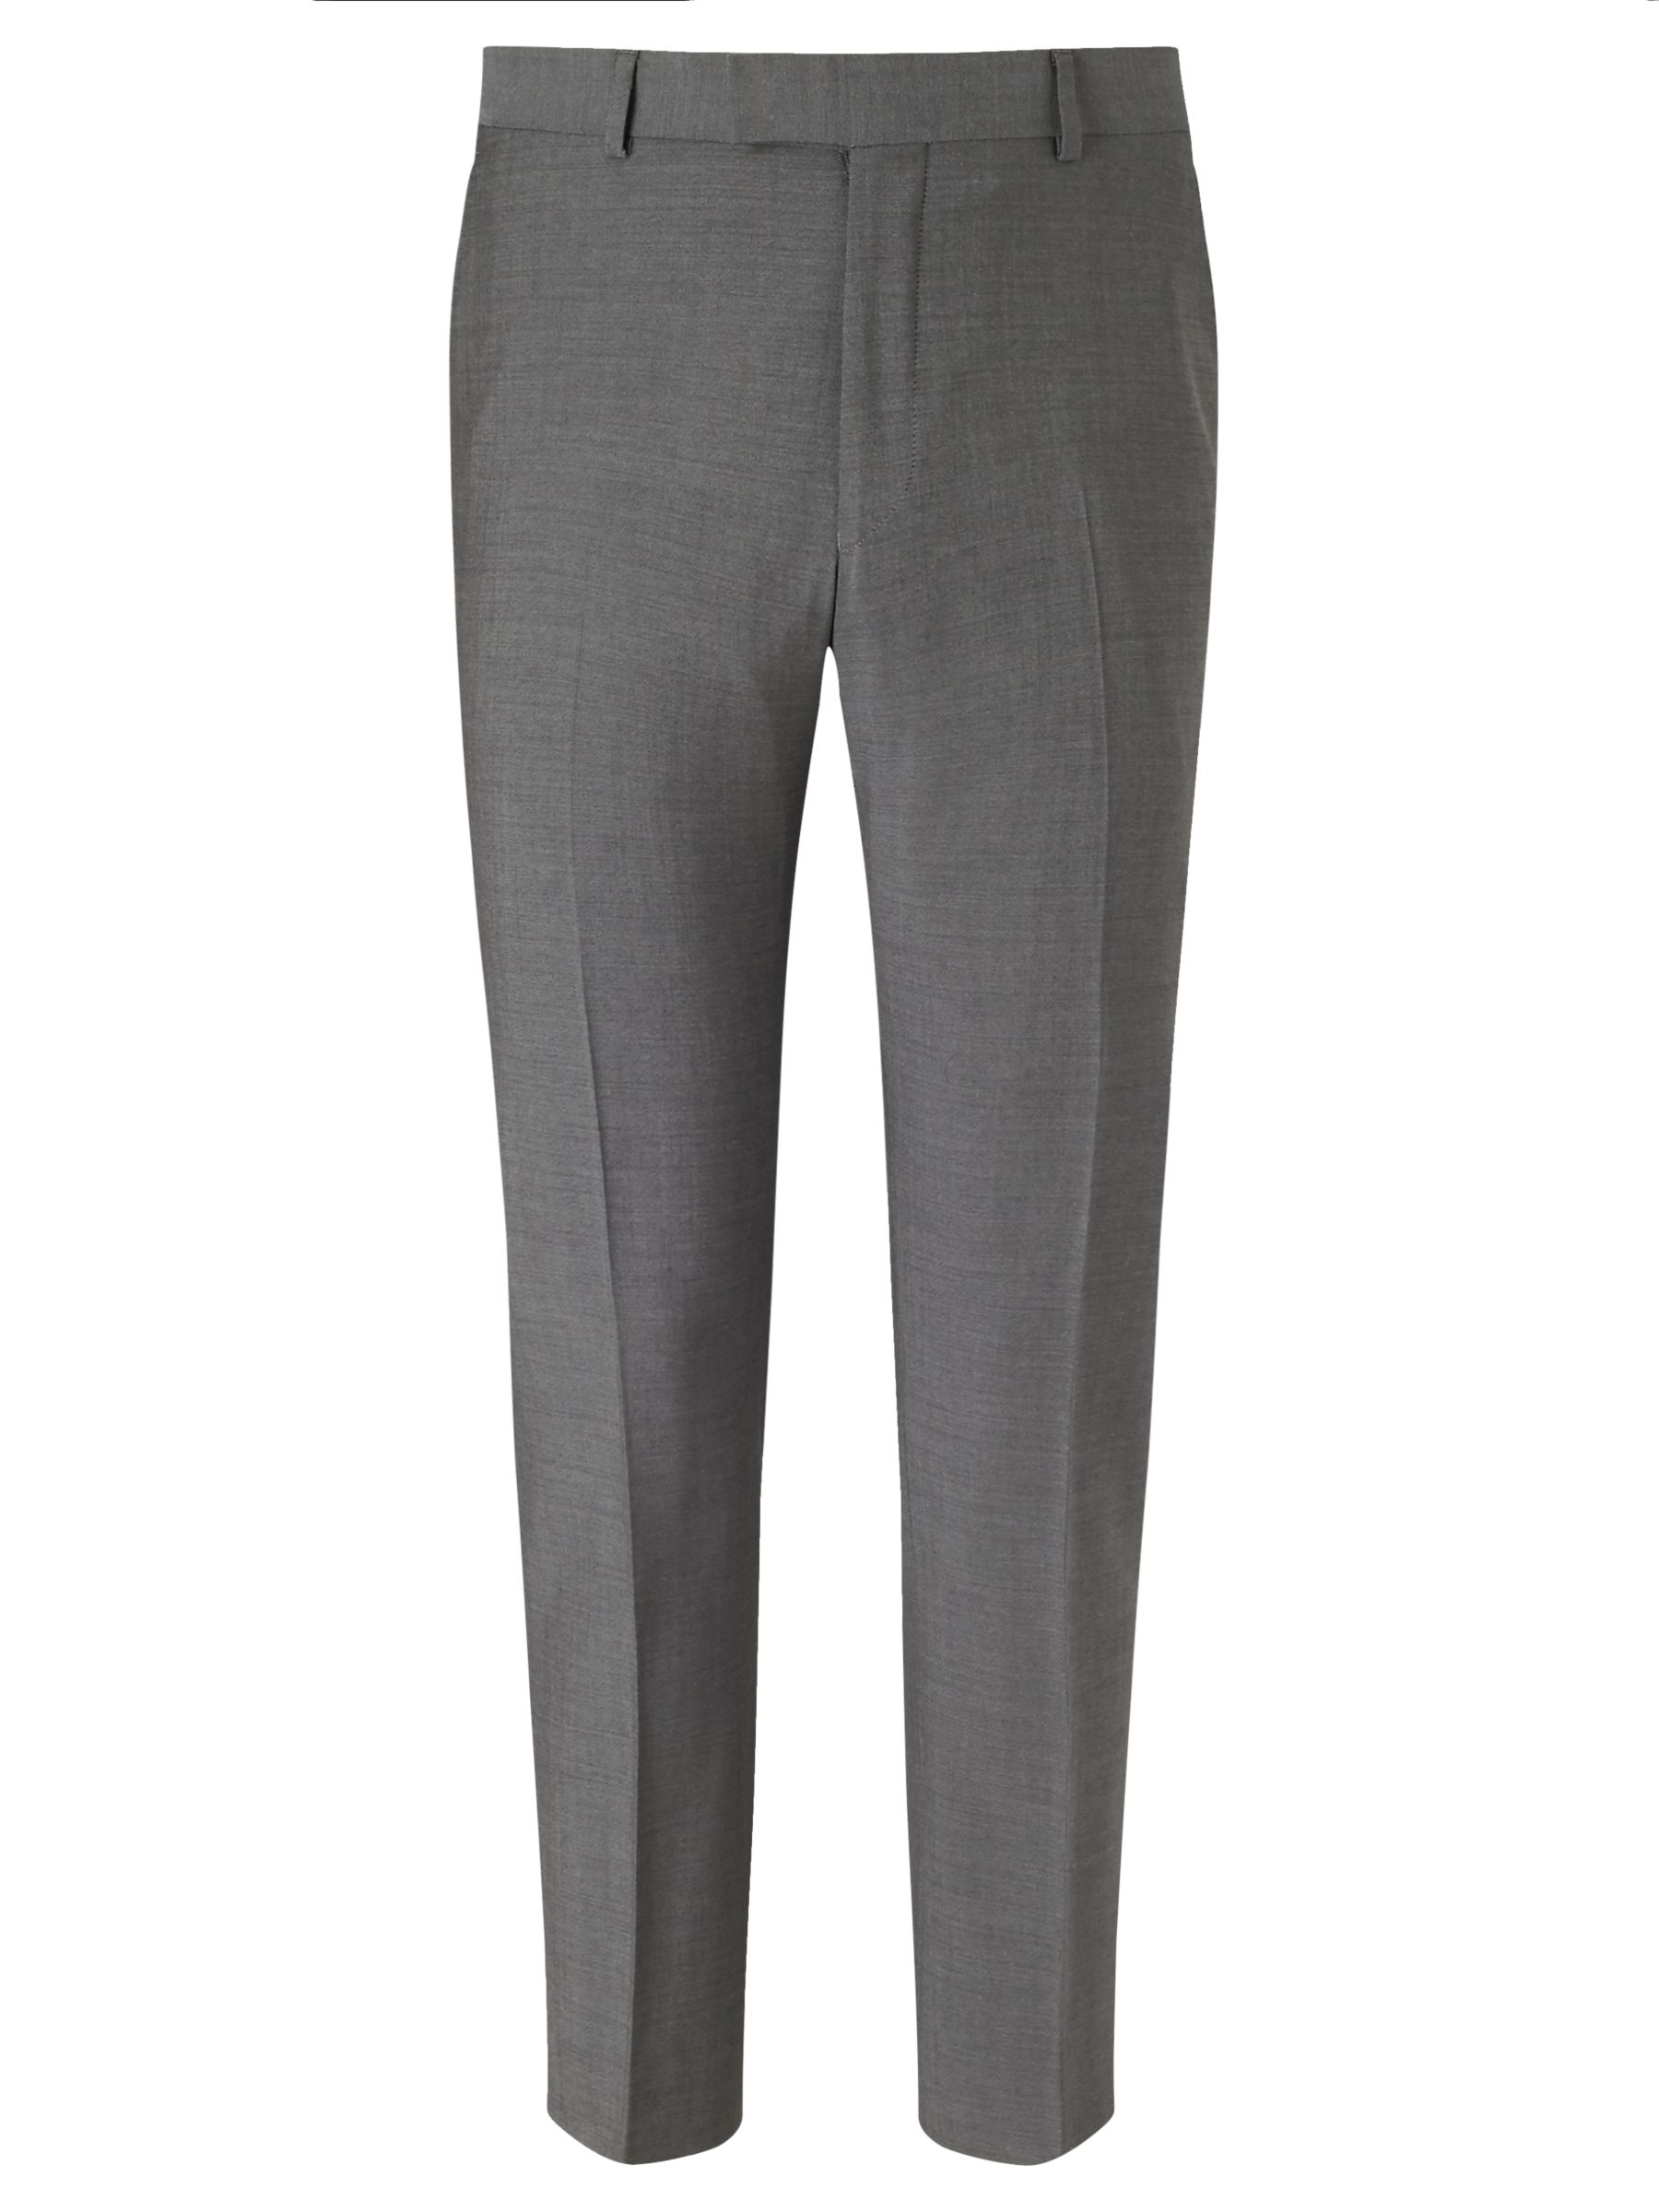 Richard James Mayfair Richard James Mayfair Tonic Sheen Slim Suit Trousers, Charcoal